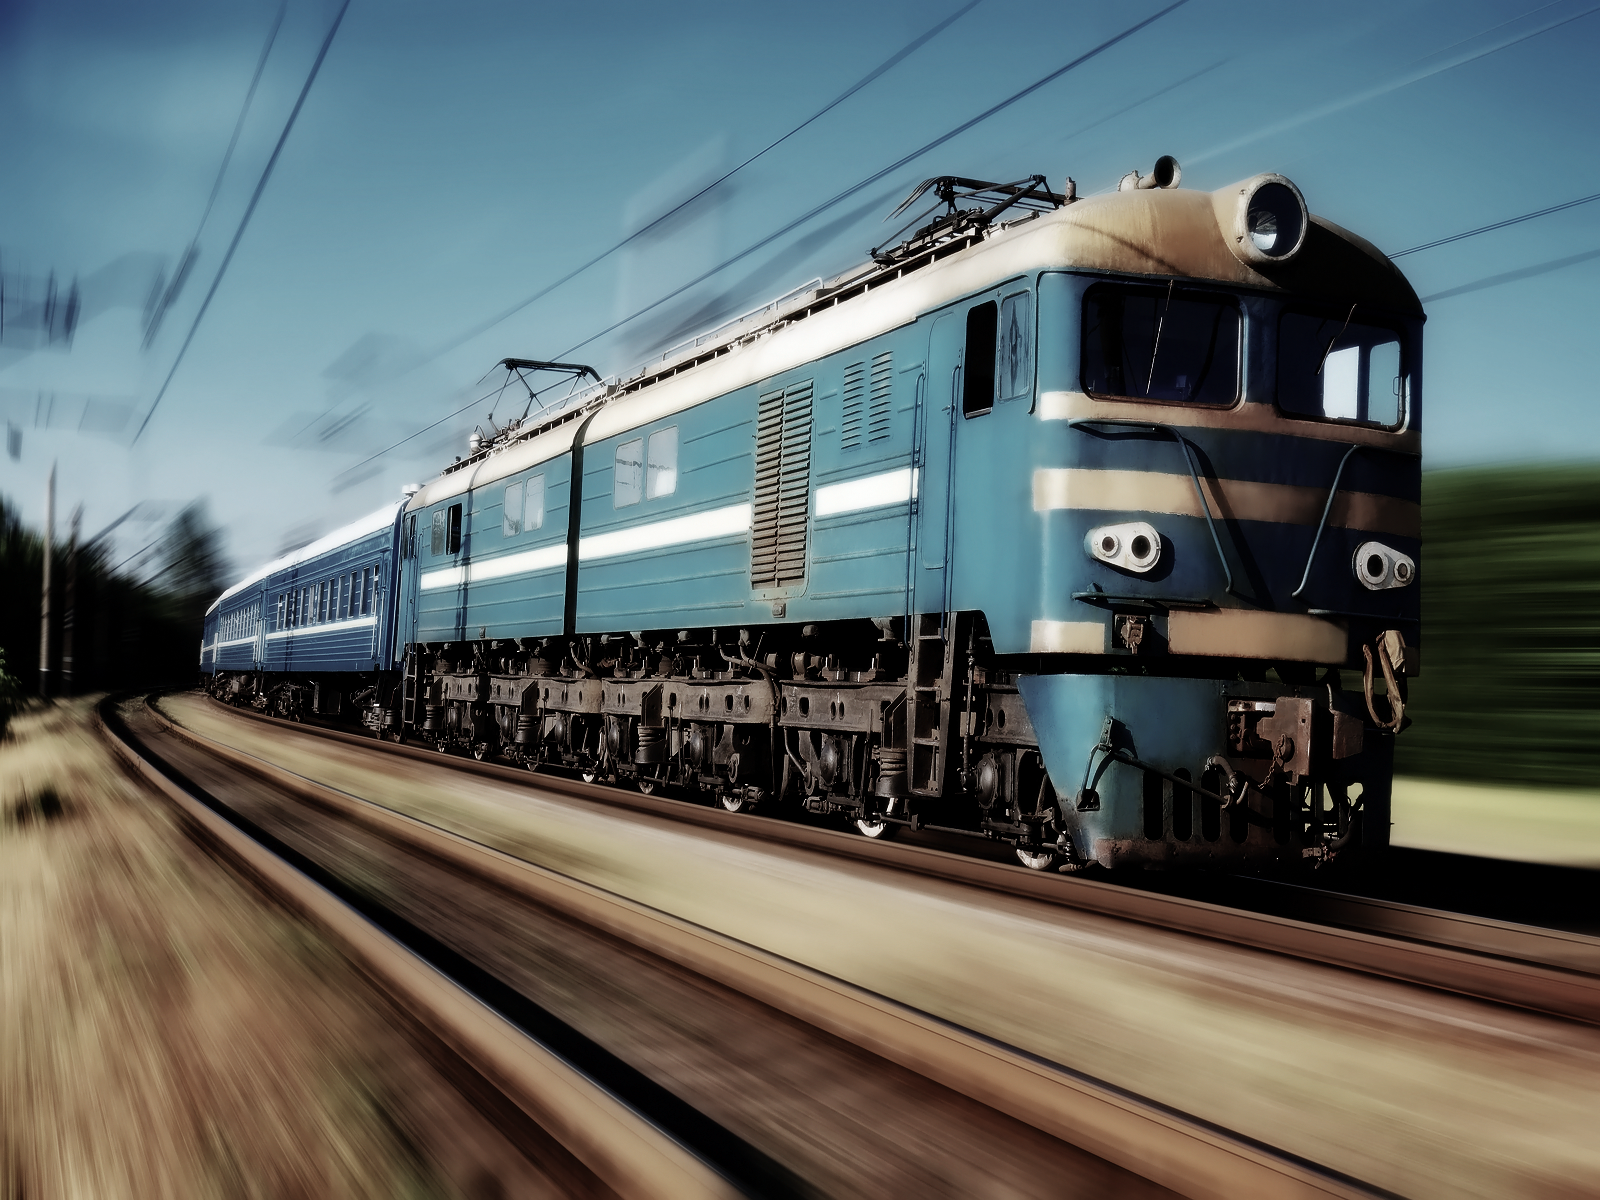 Desktop Images of Trains: 18/01/2016 by Brandy Wimbley